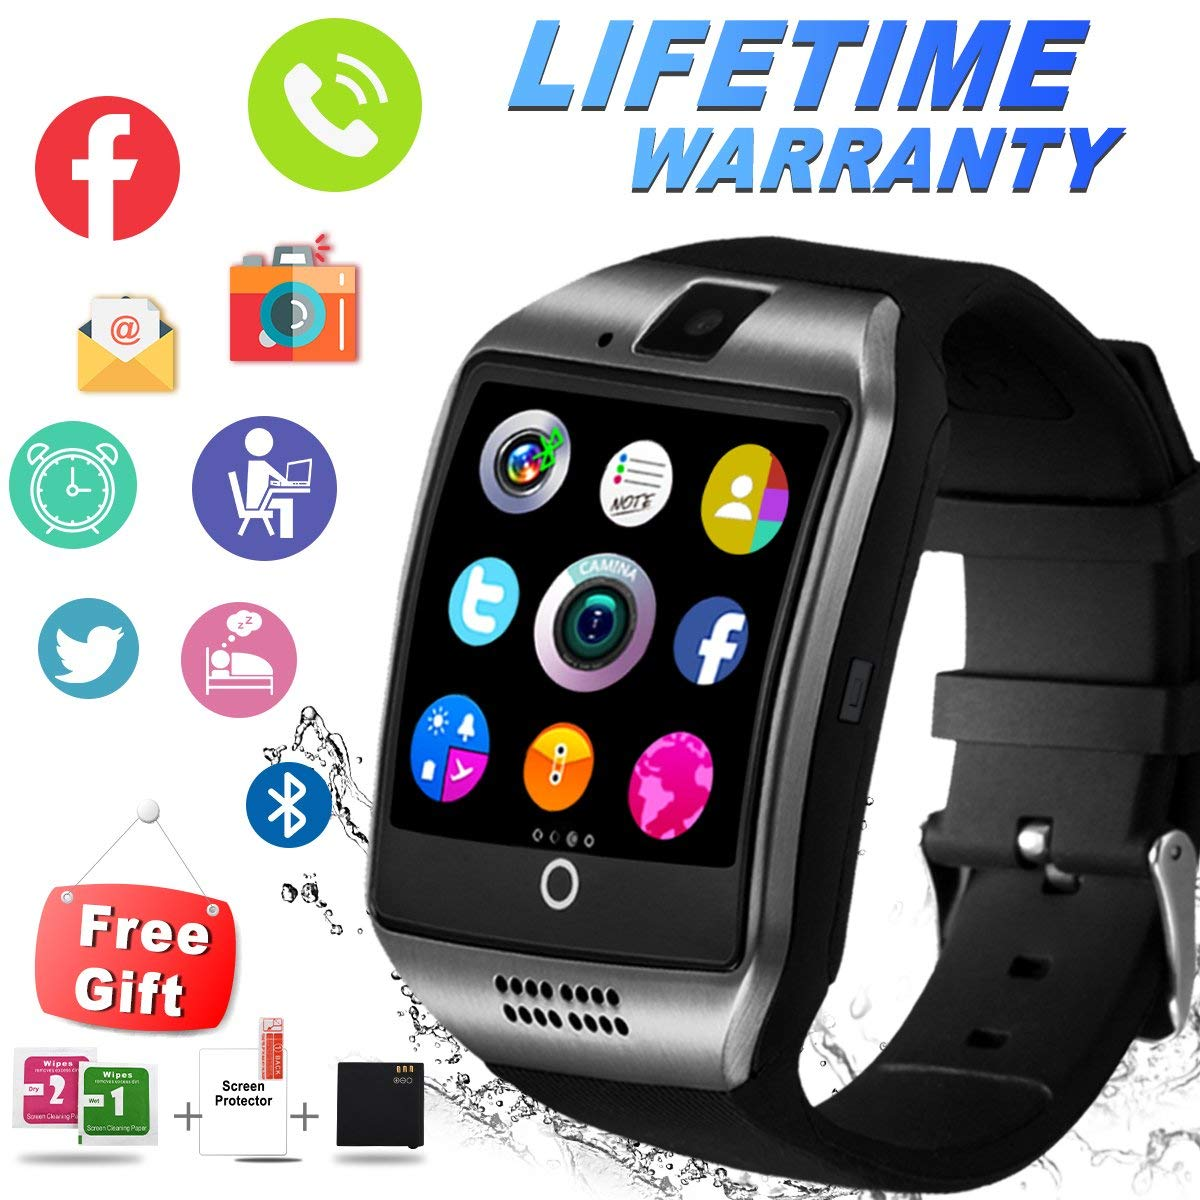 Cheap Sony Android Smart Watch Find Deals Huawei Stainless Steel Mesh Band Us Warranty Get Quotations Ifunda Bluetooth With Camera Sim Card Slot Touch Screen Smartwatch Unlocked Cell Phone